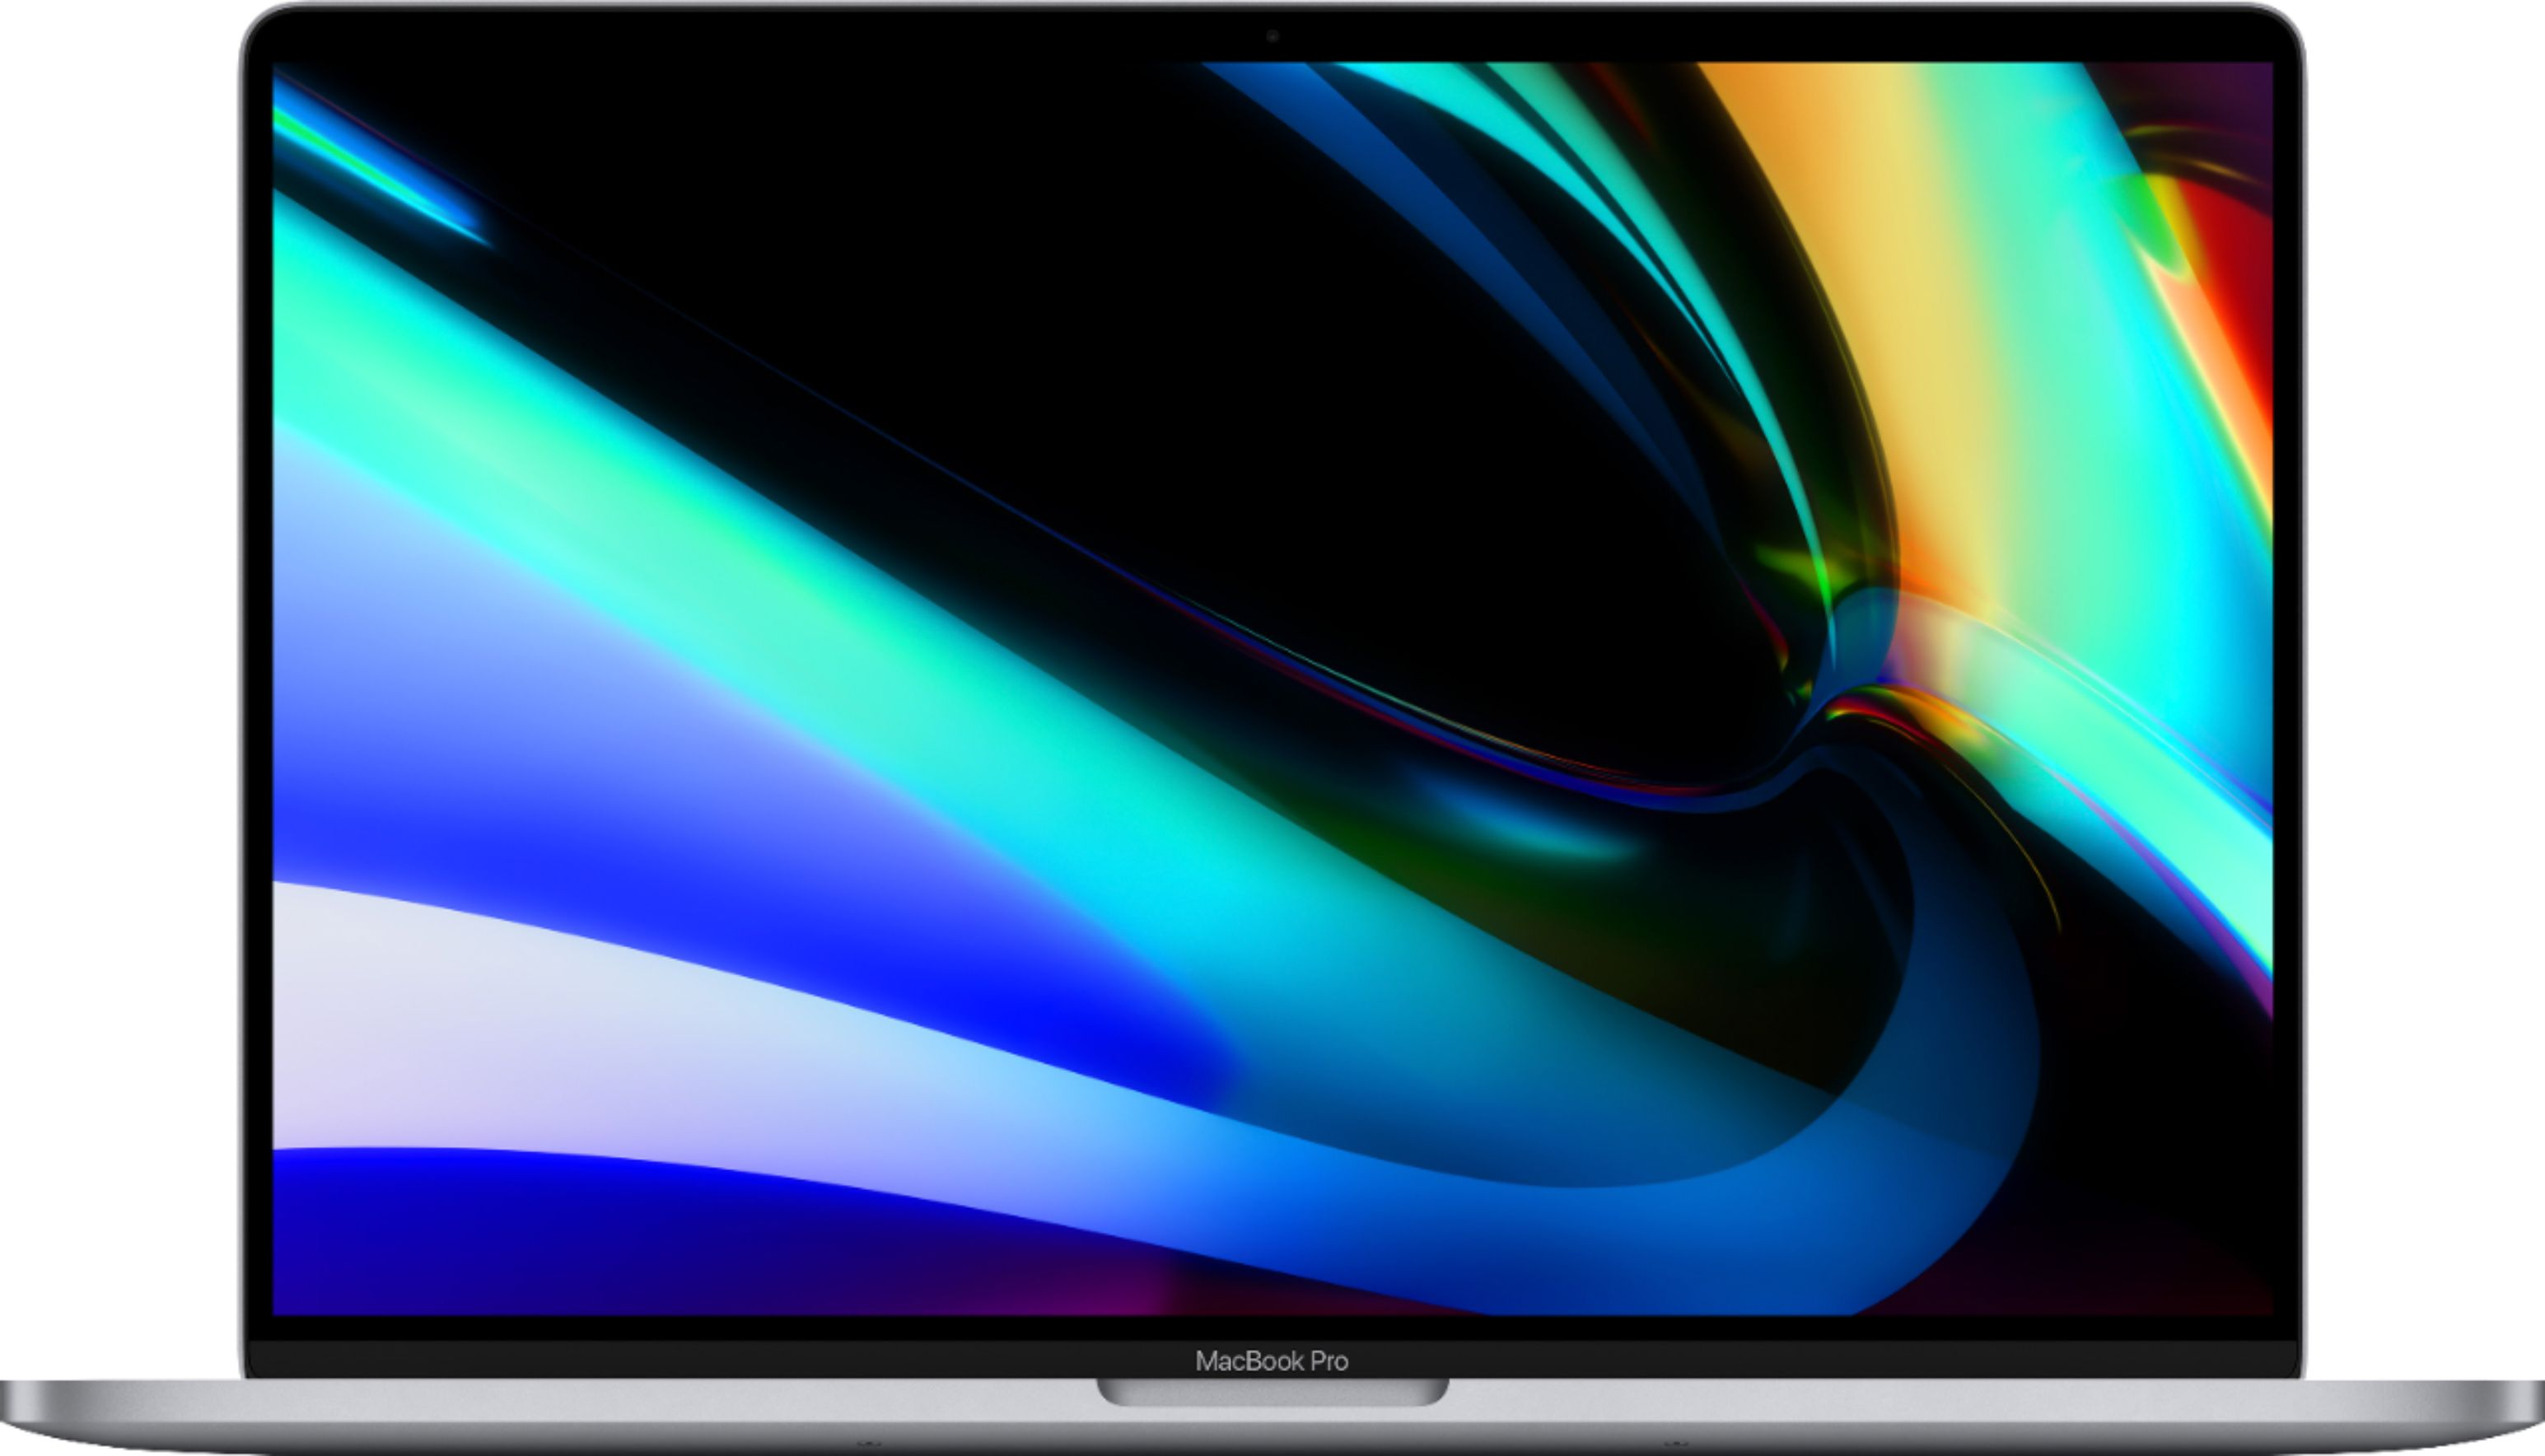 """Front Zoom. Apple - MacBook Pro - 16"""" Display with Touch Bar - Intel Core i7 - 16GB Memory - AMD Radeon Pro 5300M - 512GB SSD (Latest Model) - Space Gray."""